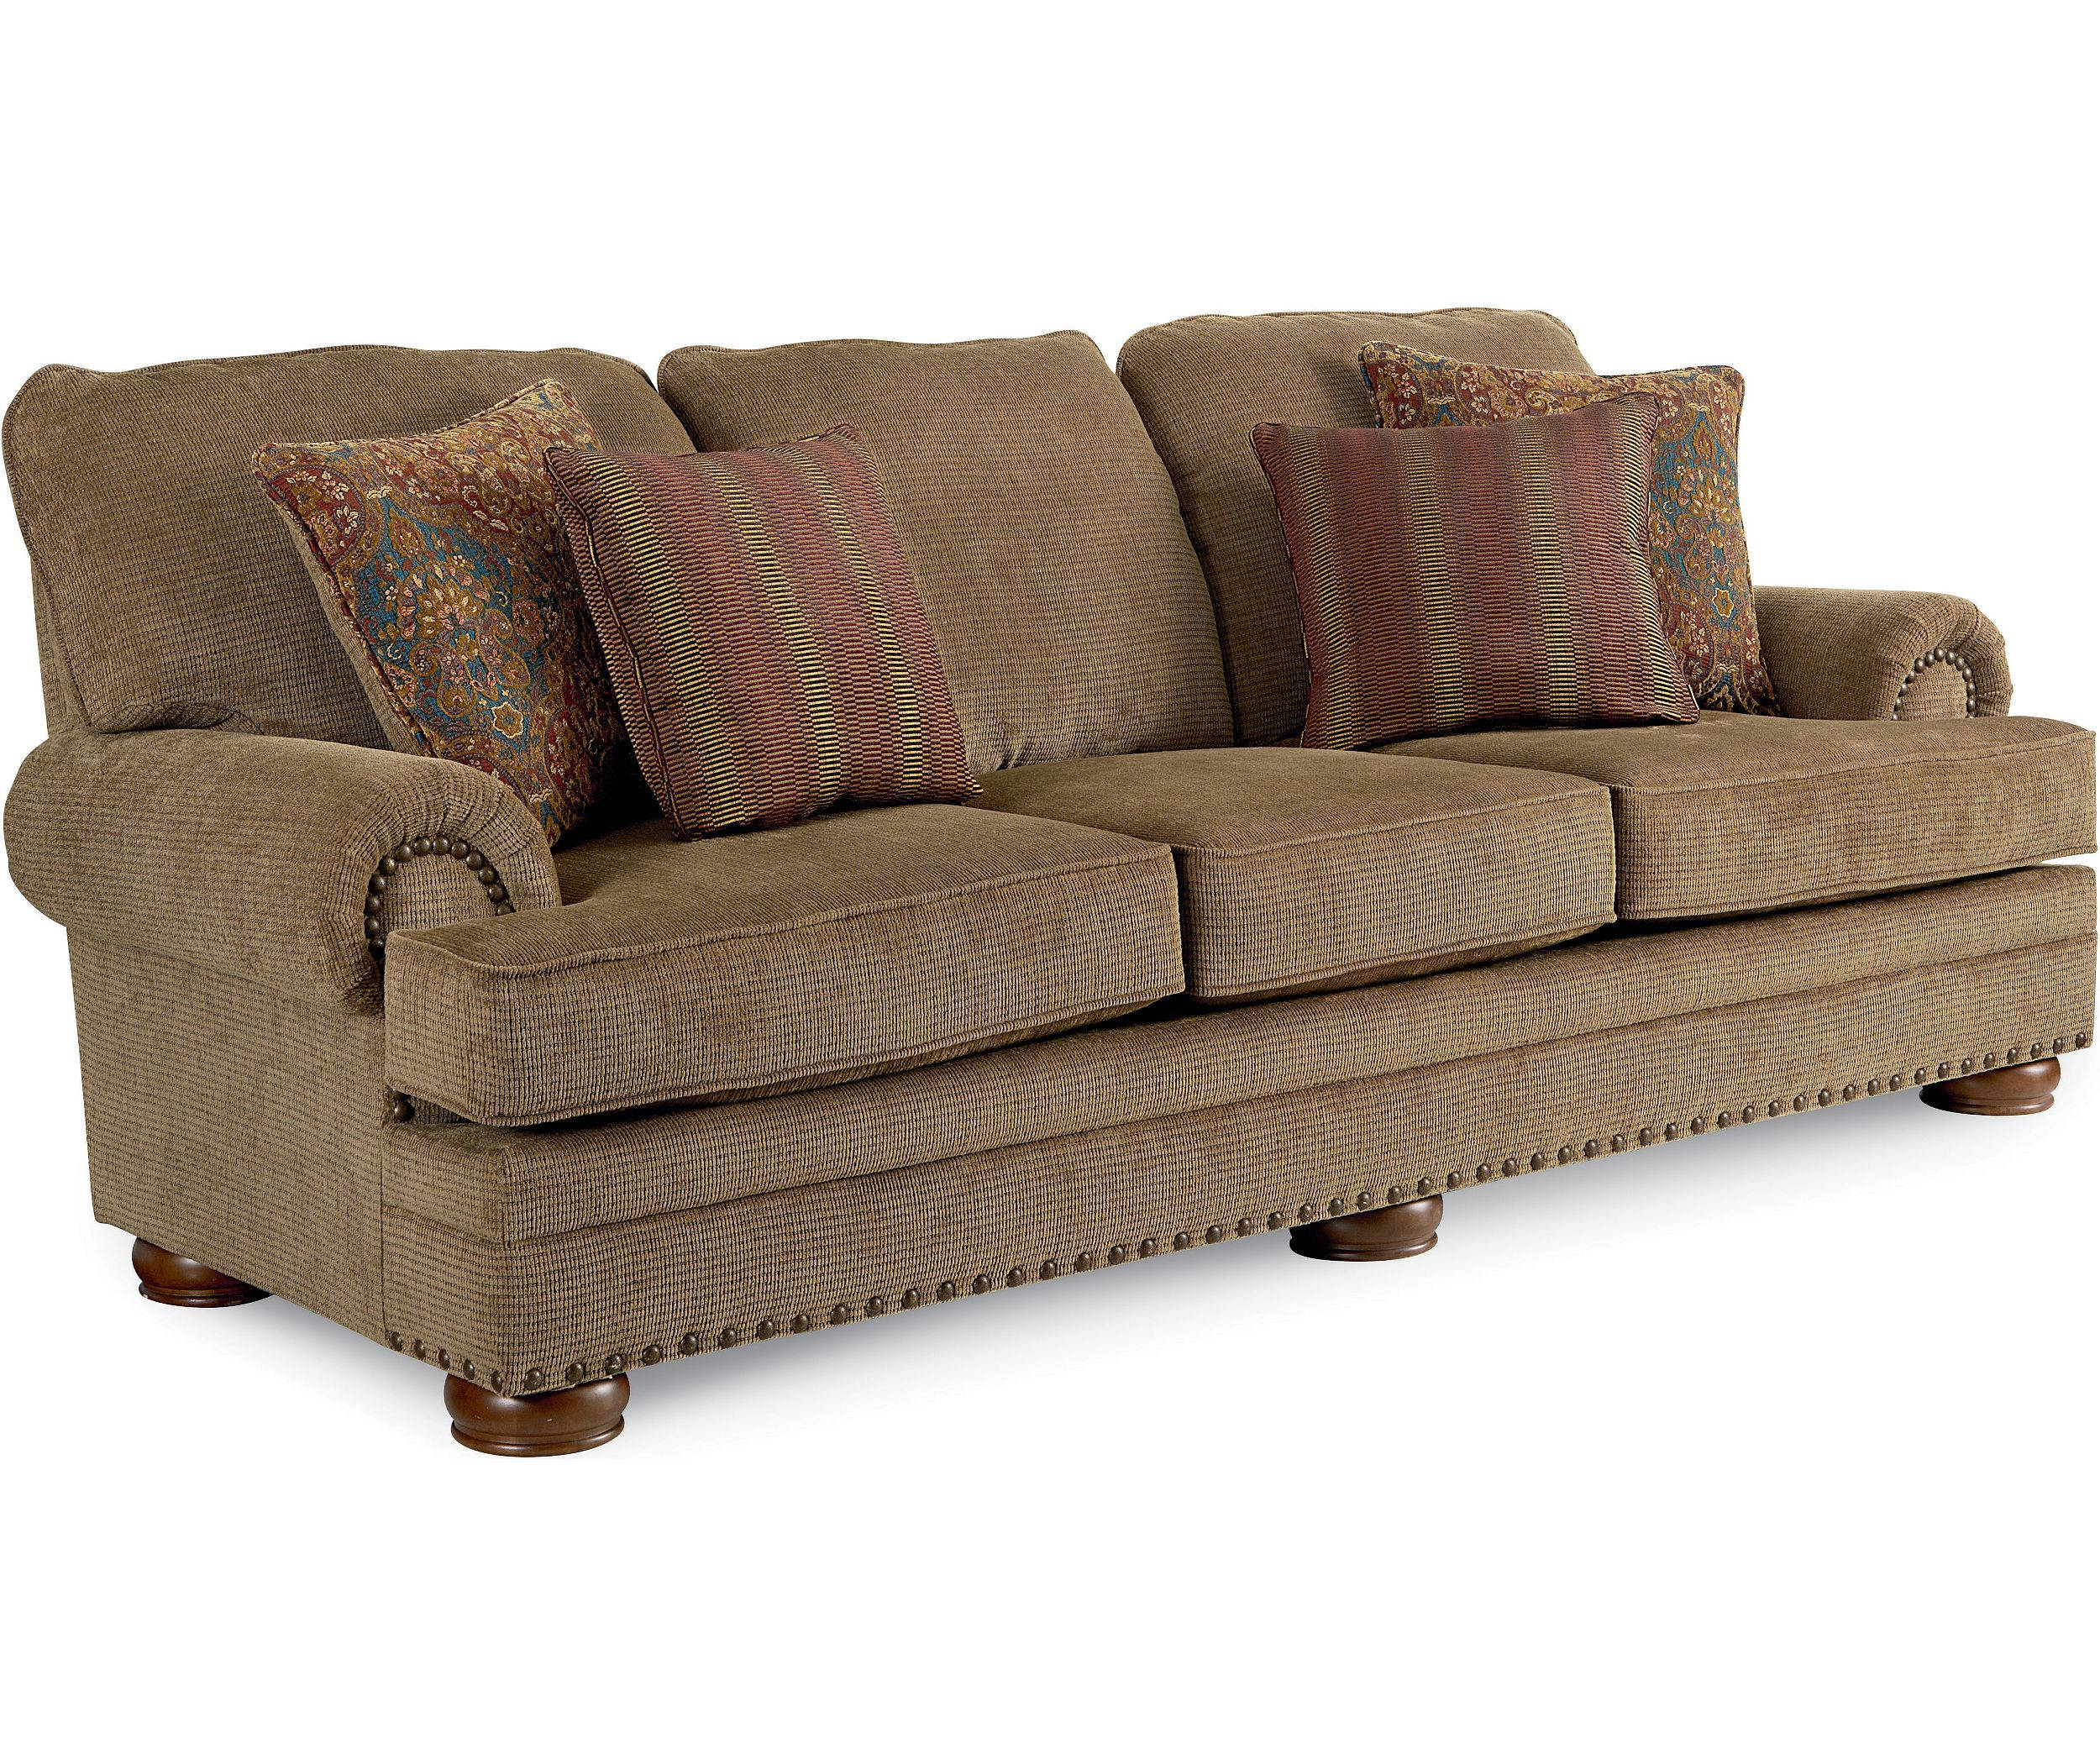 Lane Furniture Cooper Stationary Sofa The Cly Home